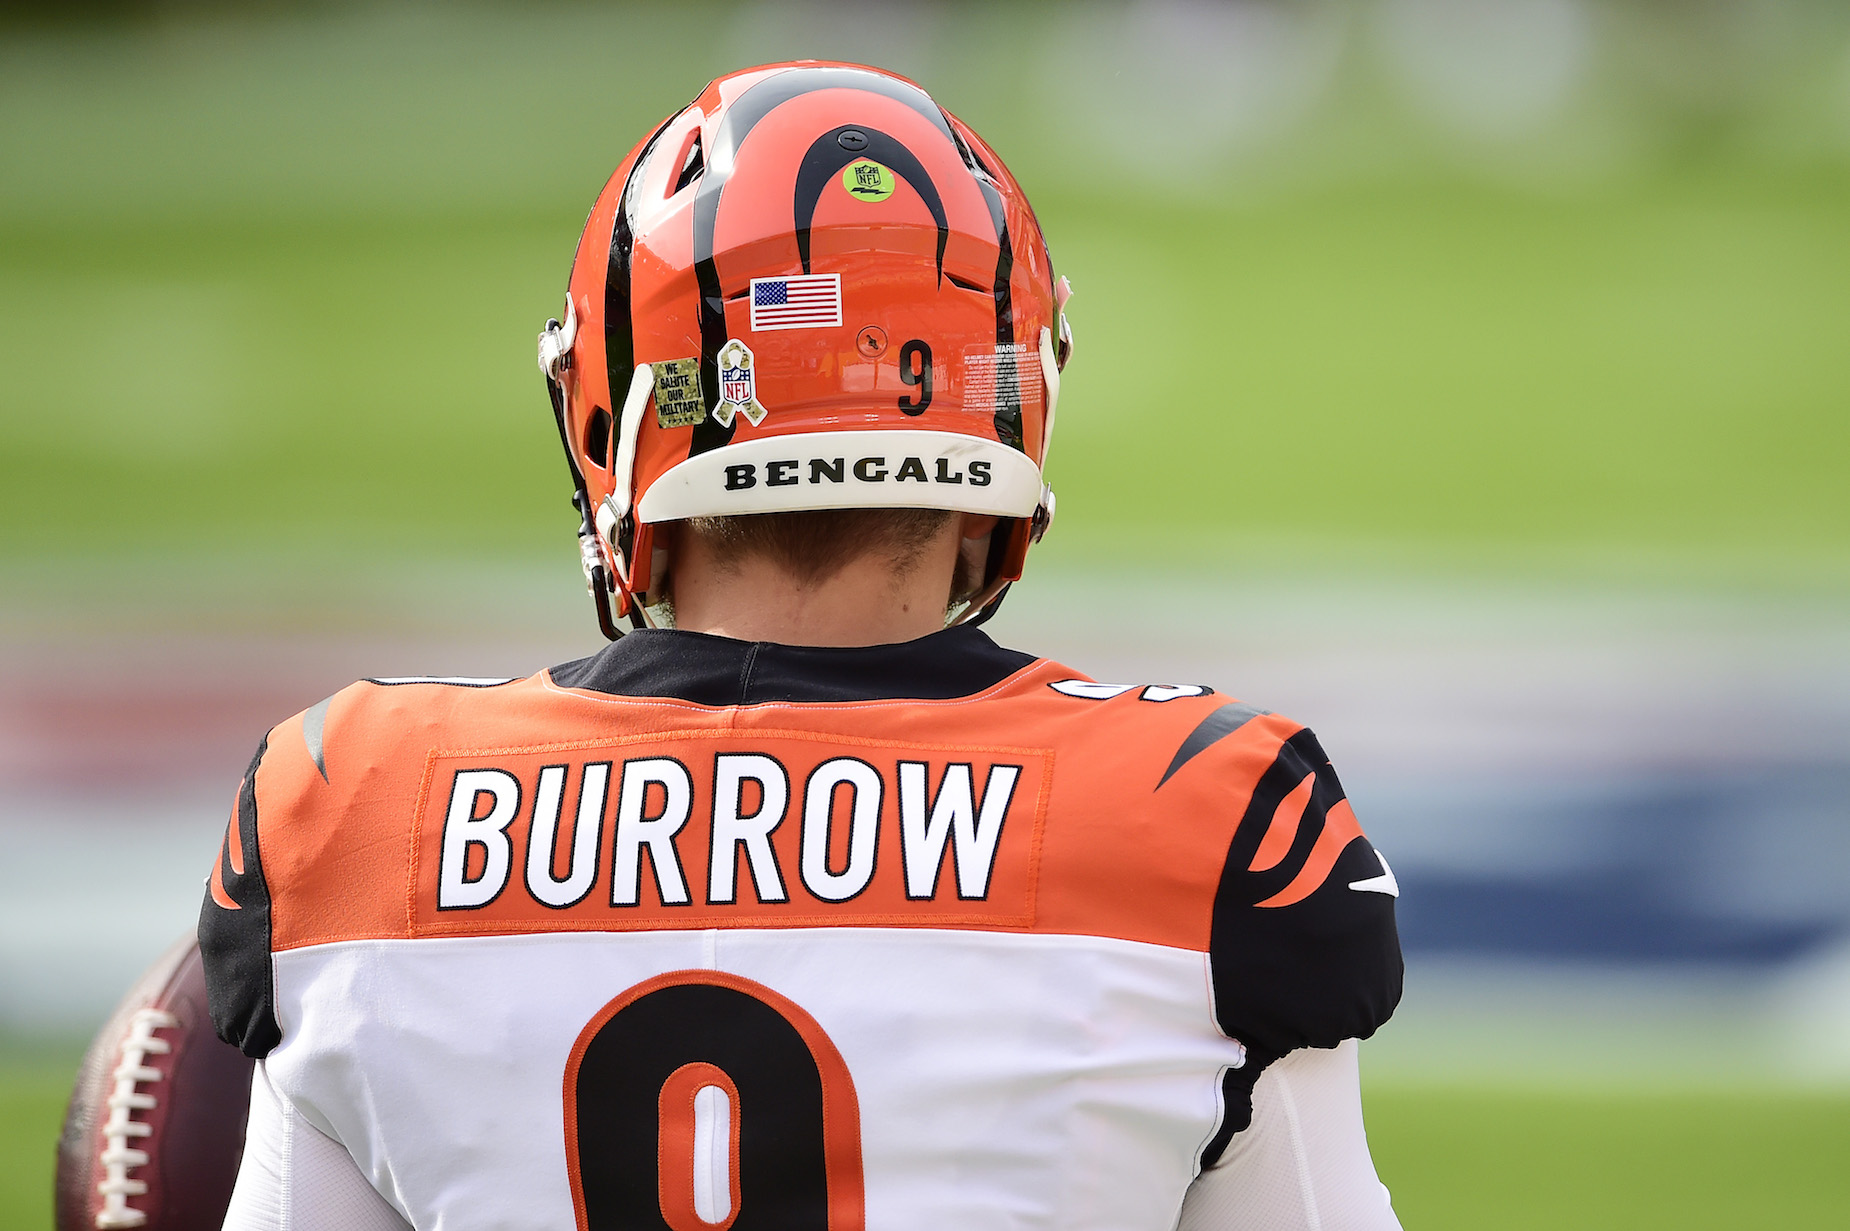 Joe Burrow is currently injured, but his still impressing the Cincinnati Bengals with his efforts.